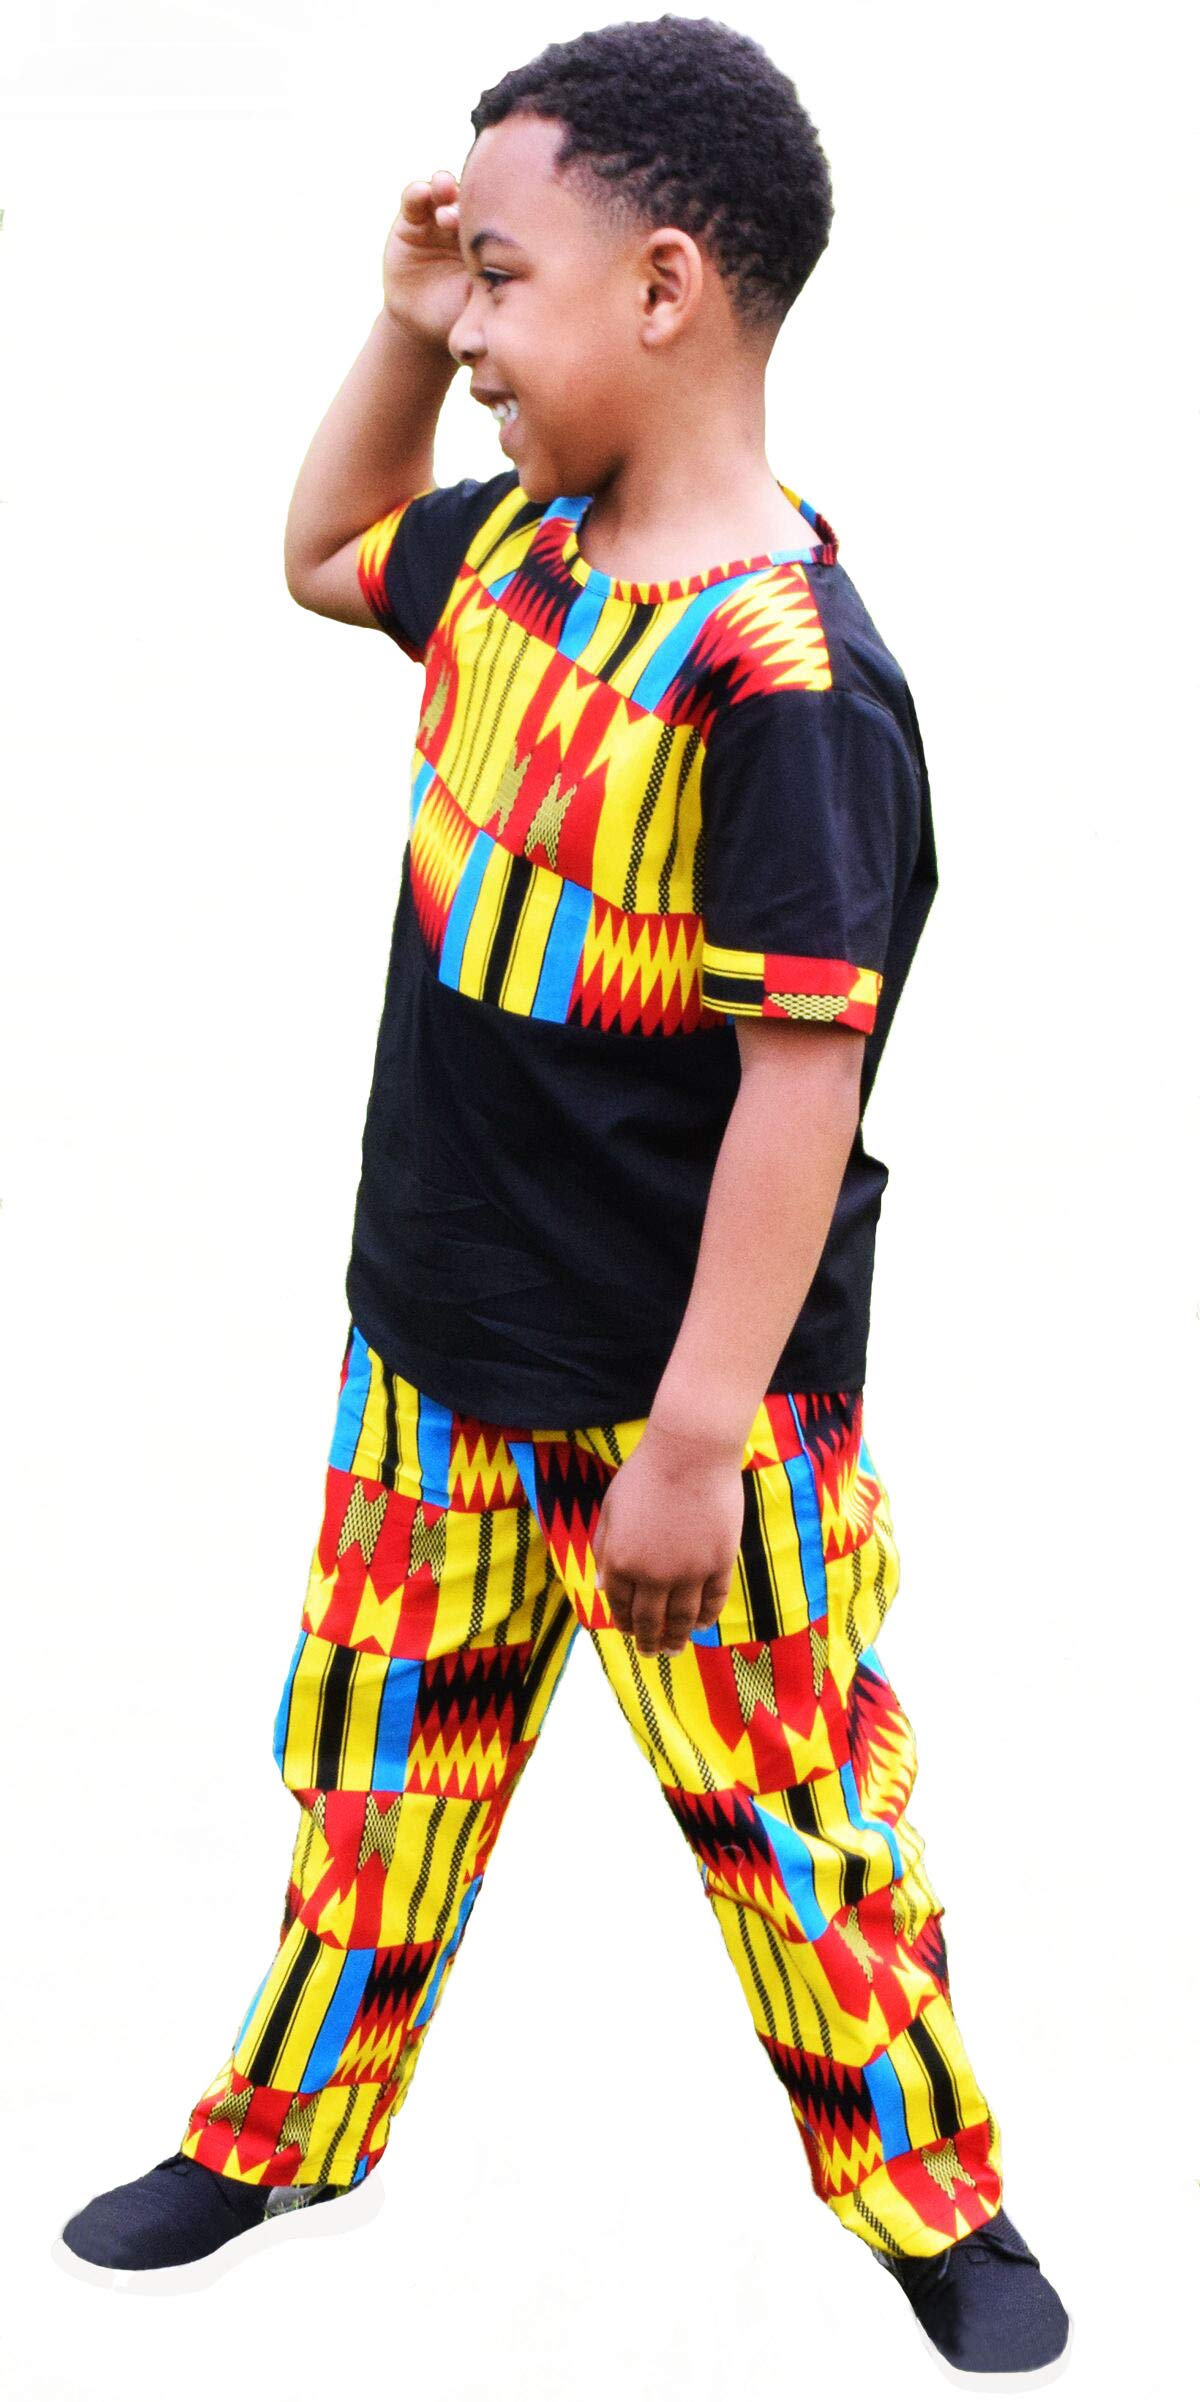 Shenbolen Boy African Print Kente Kids Ankara Suit African Ghana Tribal Clothing(A,Medium)